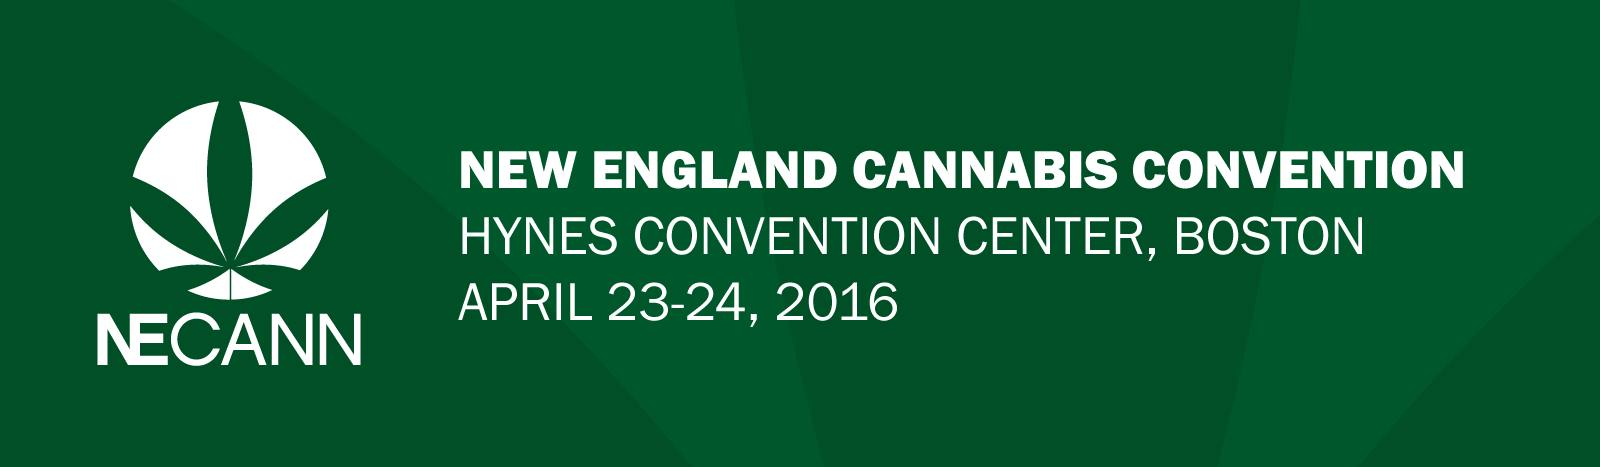 New England Cannabis Convention 2016